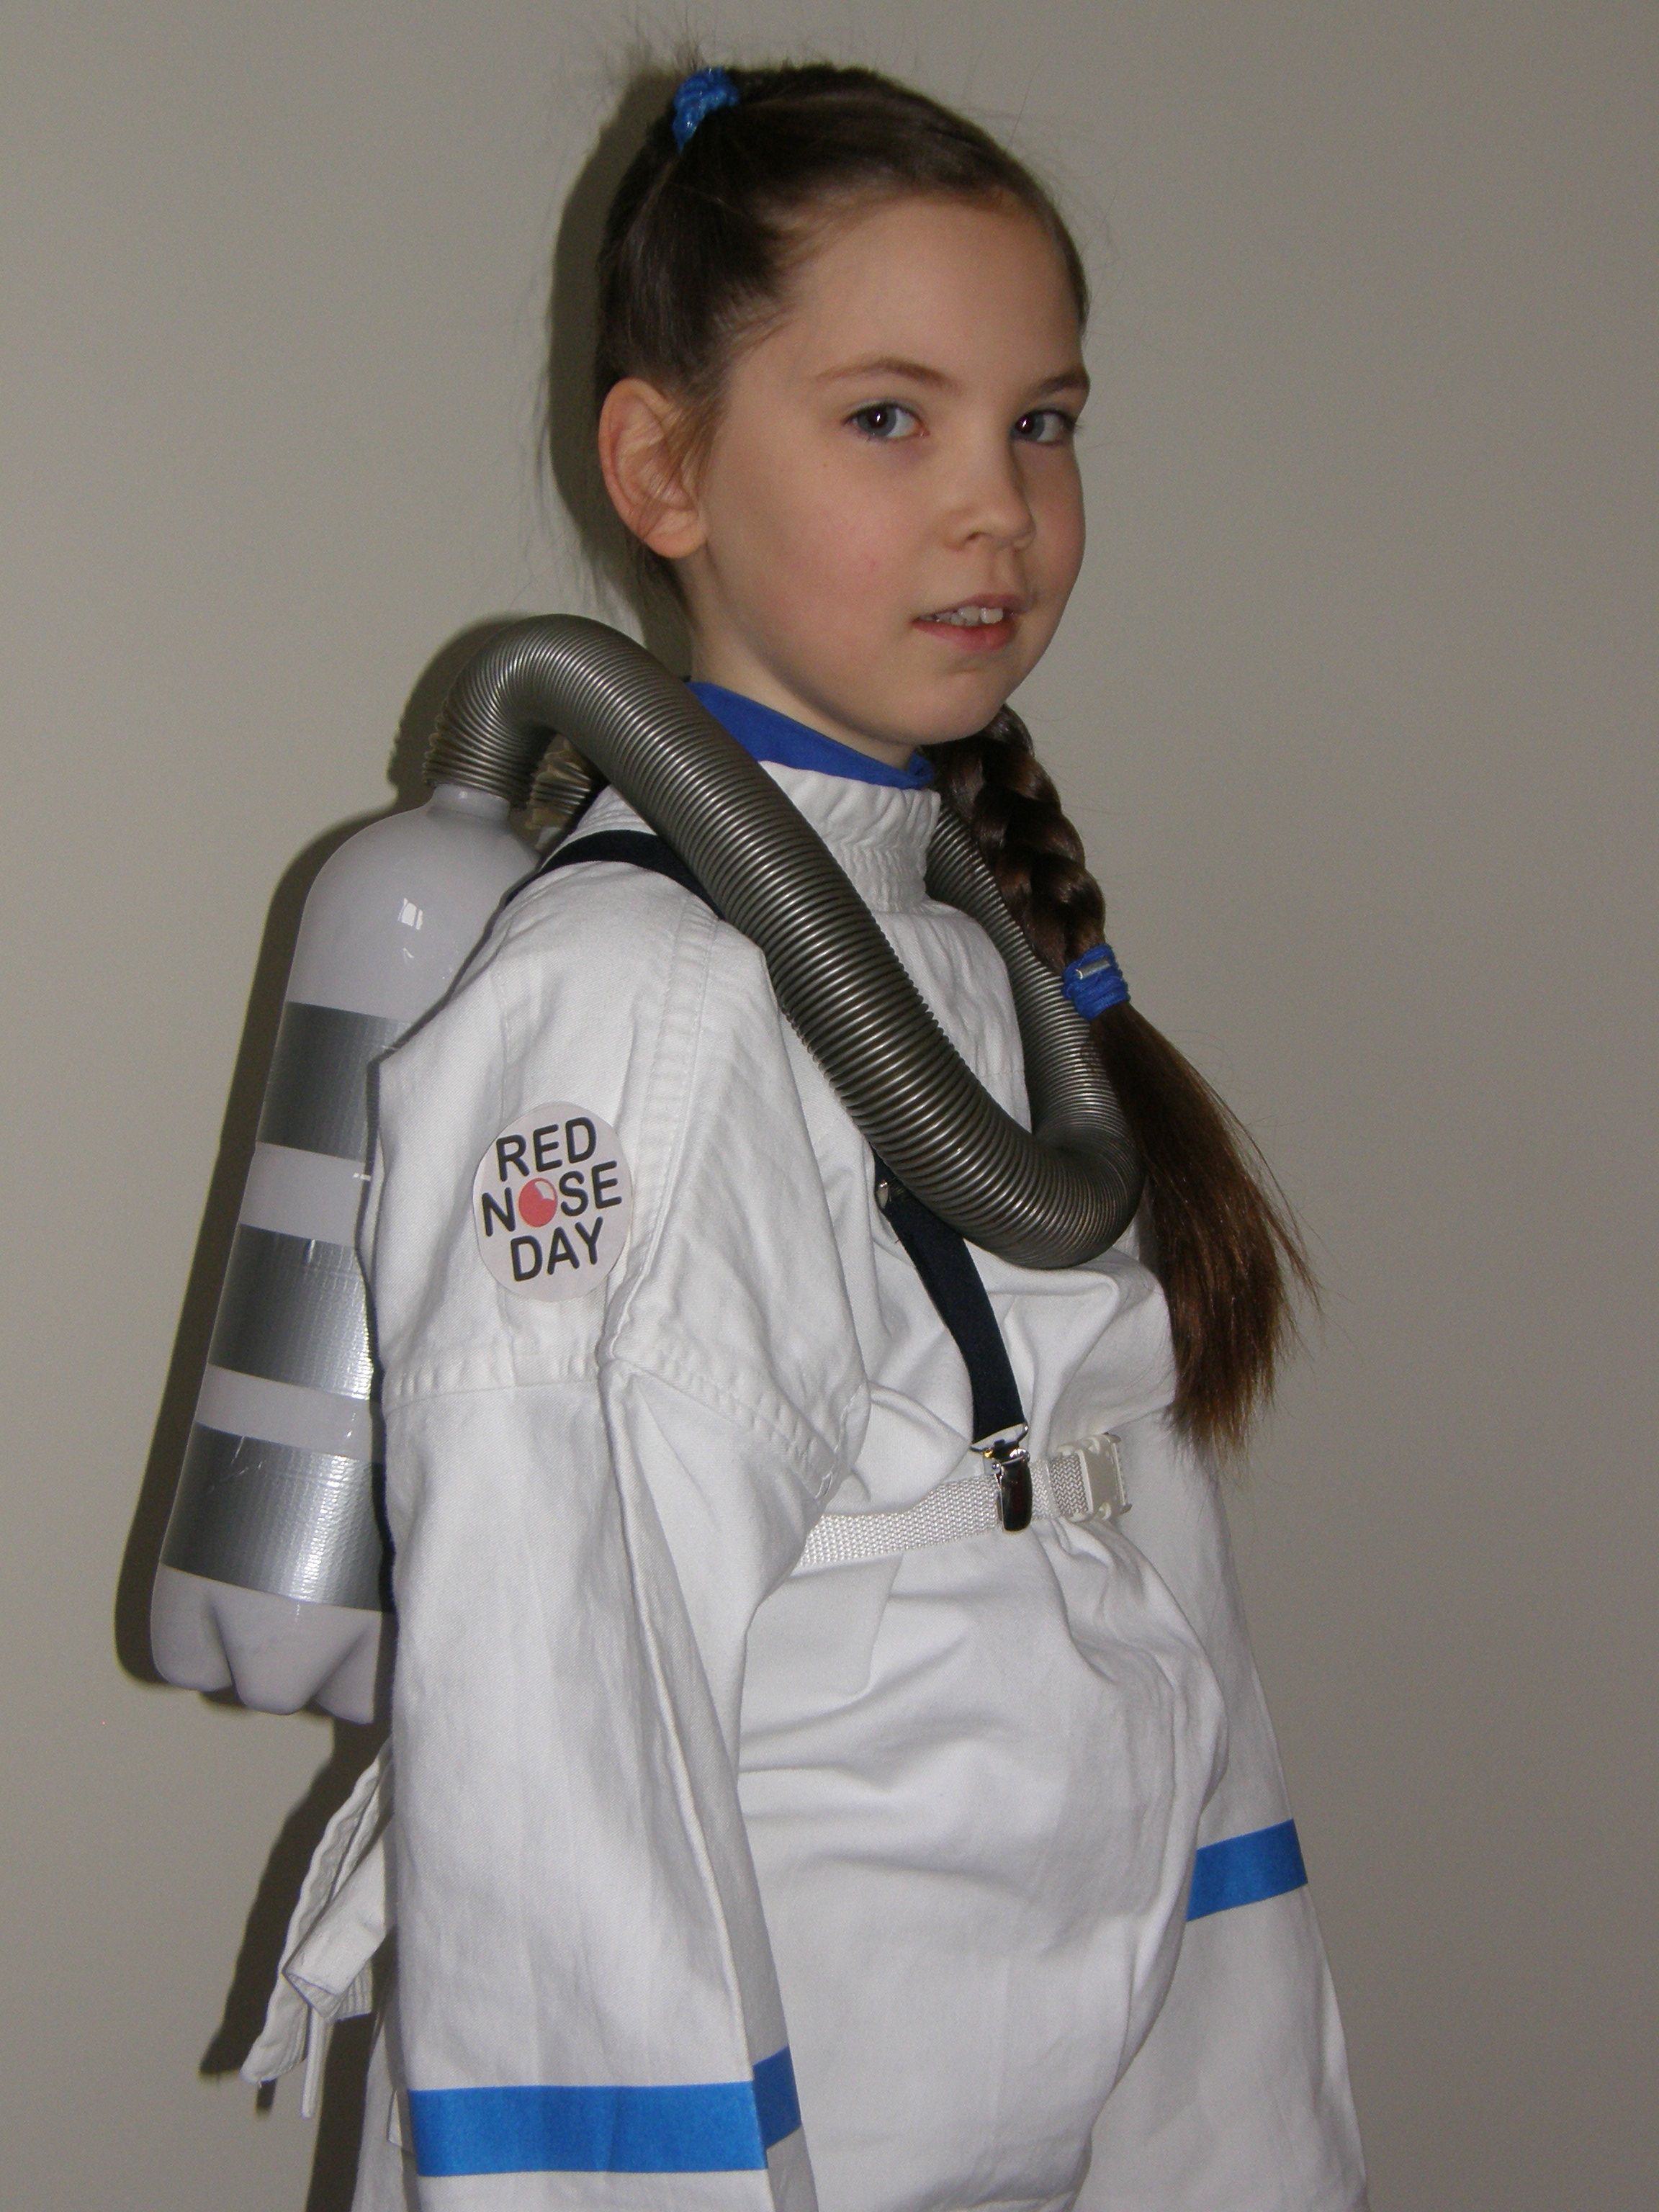 Woman jump astronaut costume pics about space for Female space suit